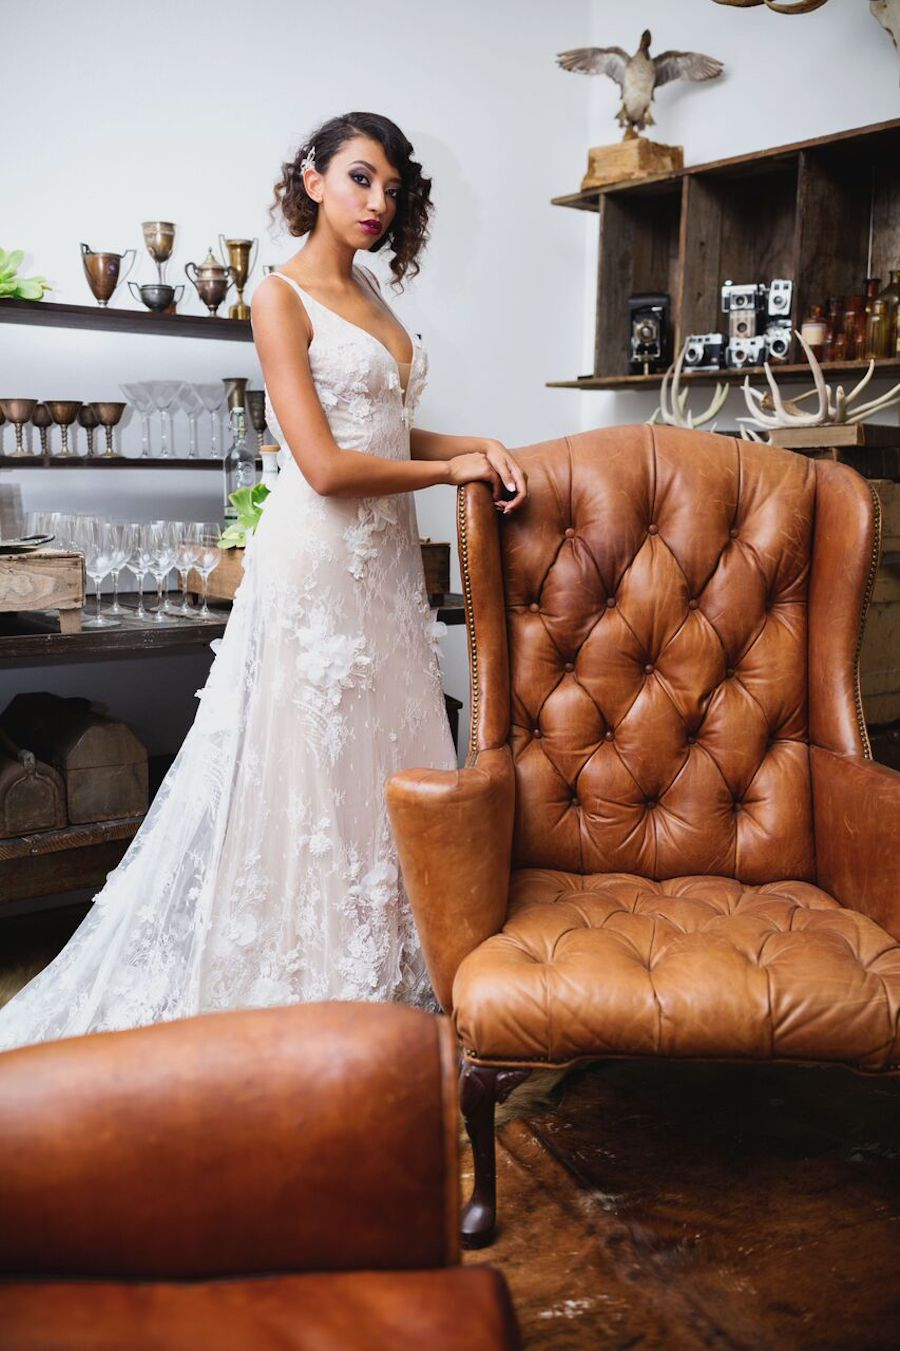 Greenery-Leather-Styled-Shoot-Sweet-Salvage-Rentals-Greg-Cahill25.jpg